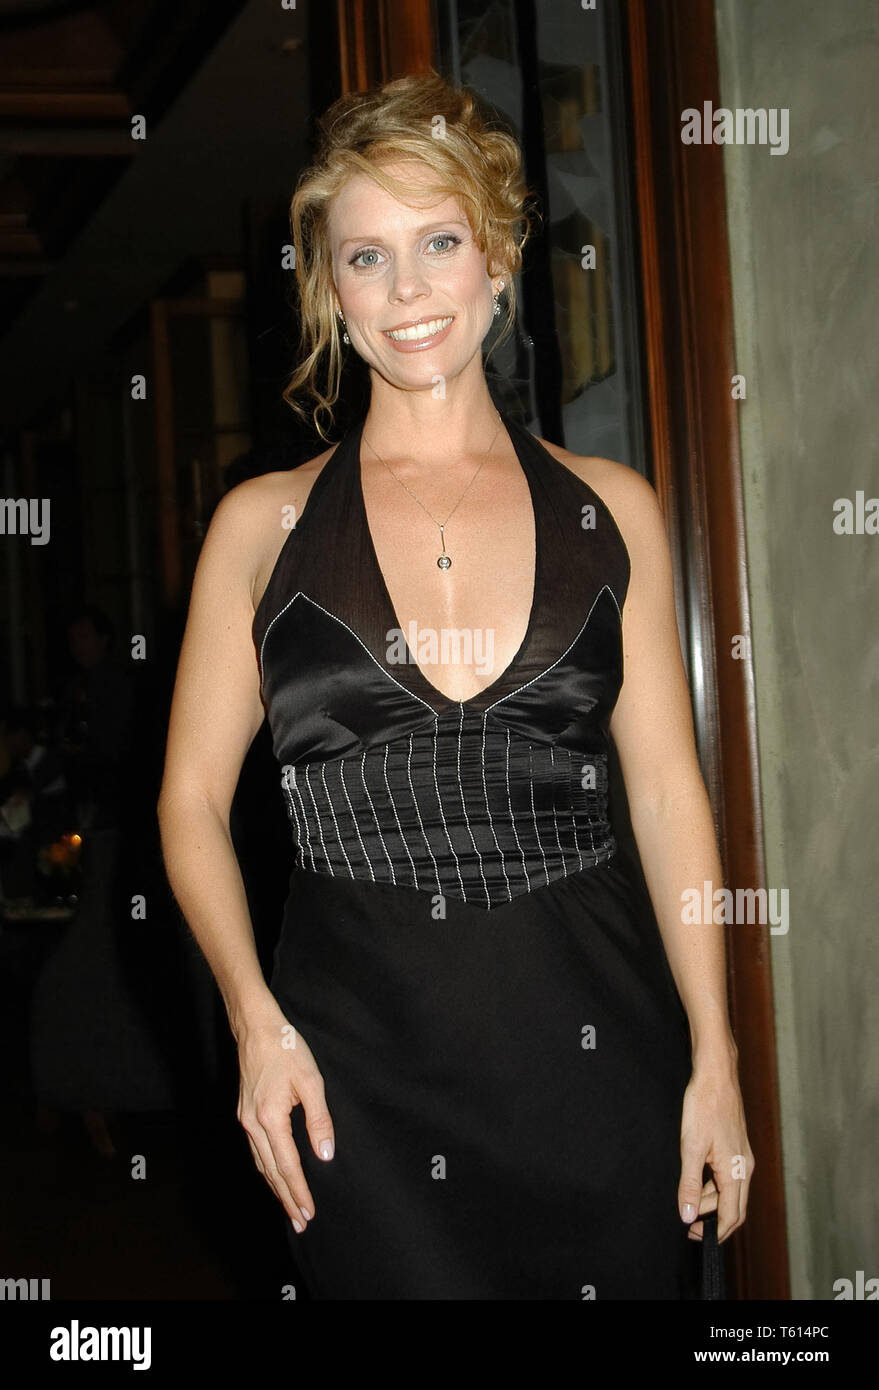 Cheryl Hines at the Academy of Television Arts & Sciences dinner honoring the 55th Annual Primetime Emmy Awards Nominees for Outstanding Performing Talent at Spagos in Beverly Hills, CA. The event took place on Thursday, September 18, 2003. Photo by: SBM / PictureLux  File Reference # 33790_1529SBMPLX - Stock Image